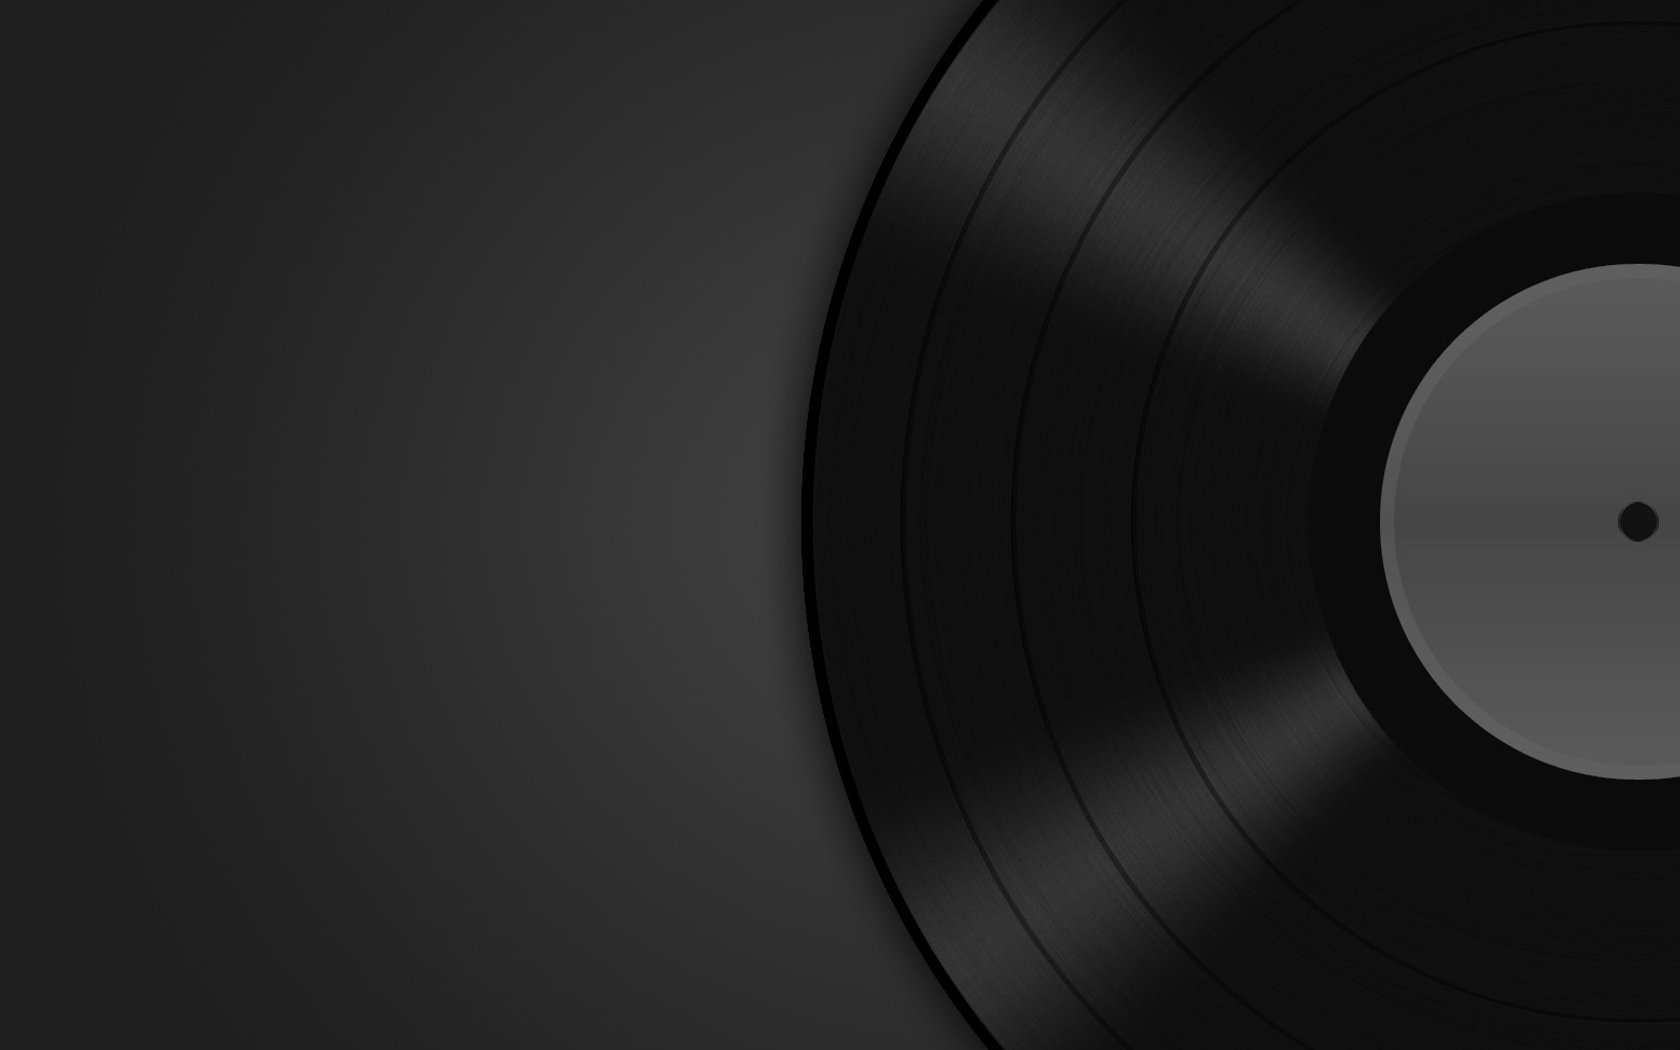 Vinyl Wallpaper And Background Image